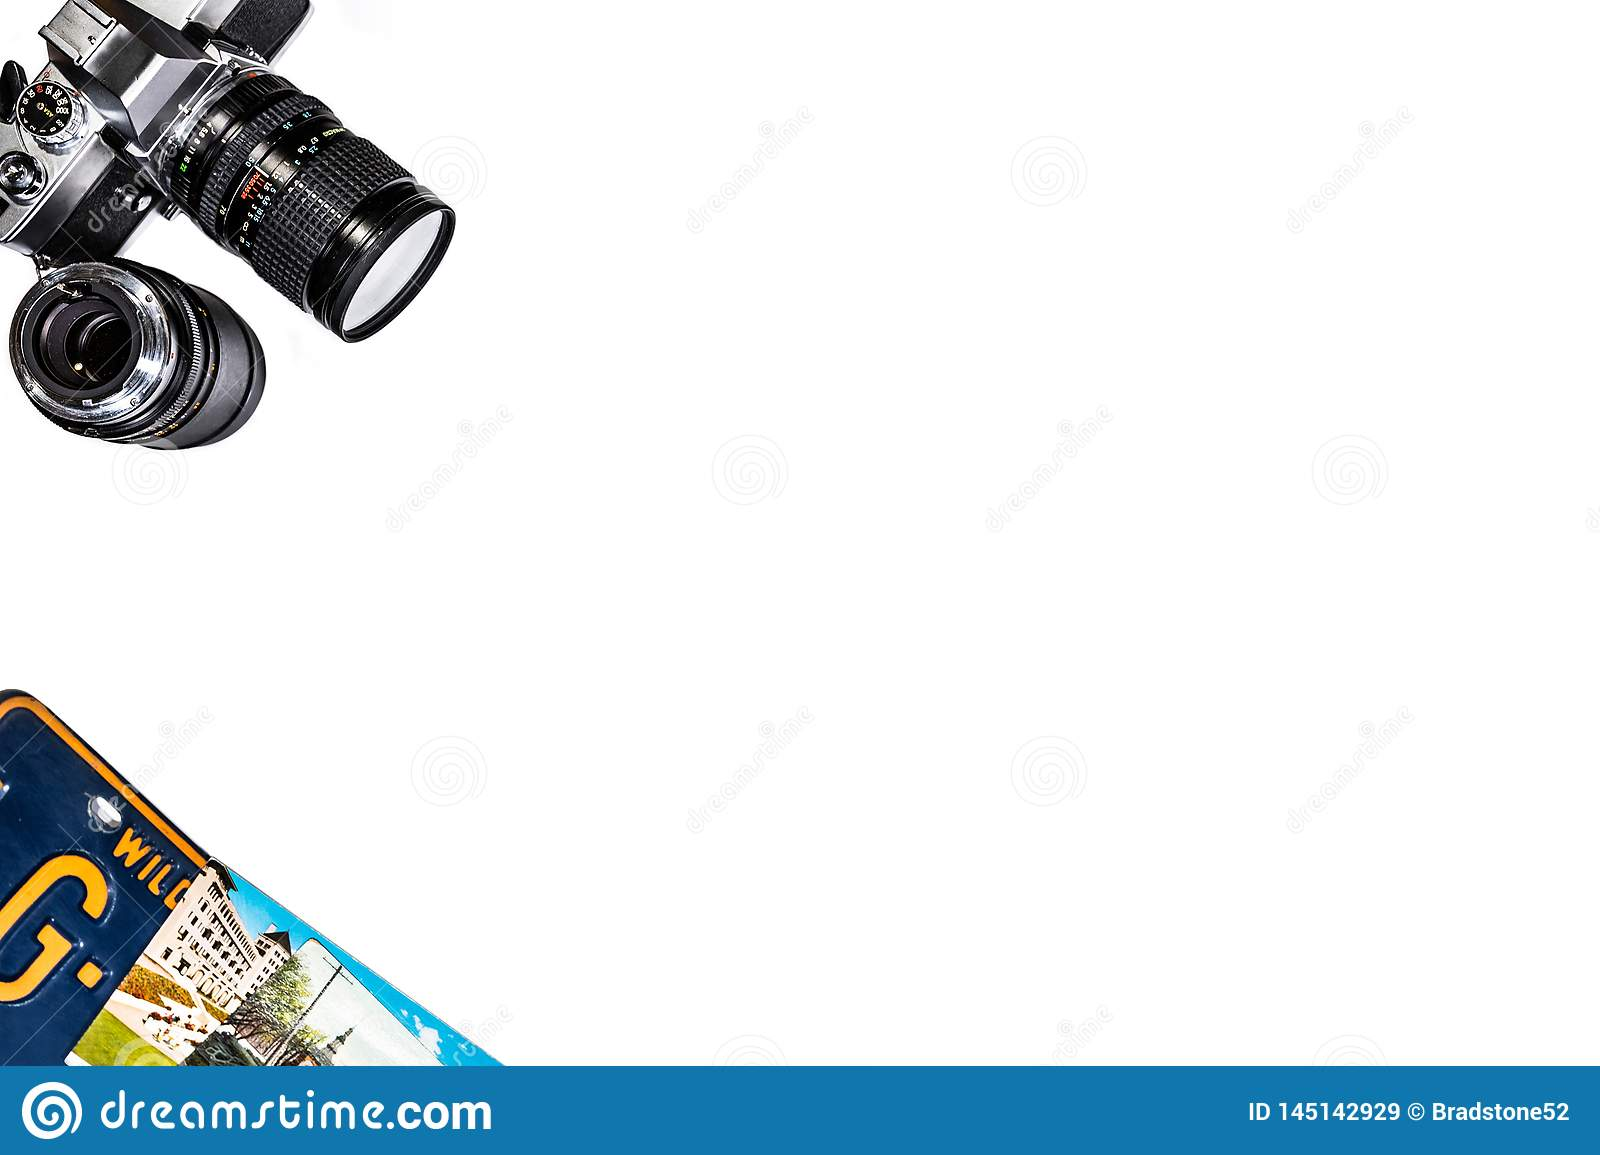 Camera License Plate Background on white